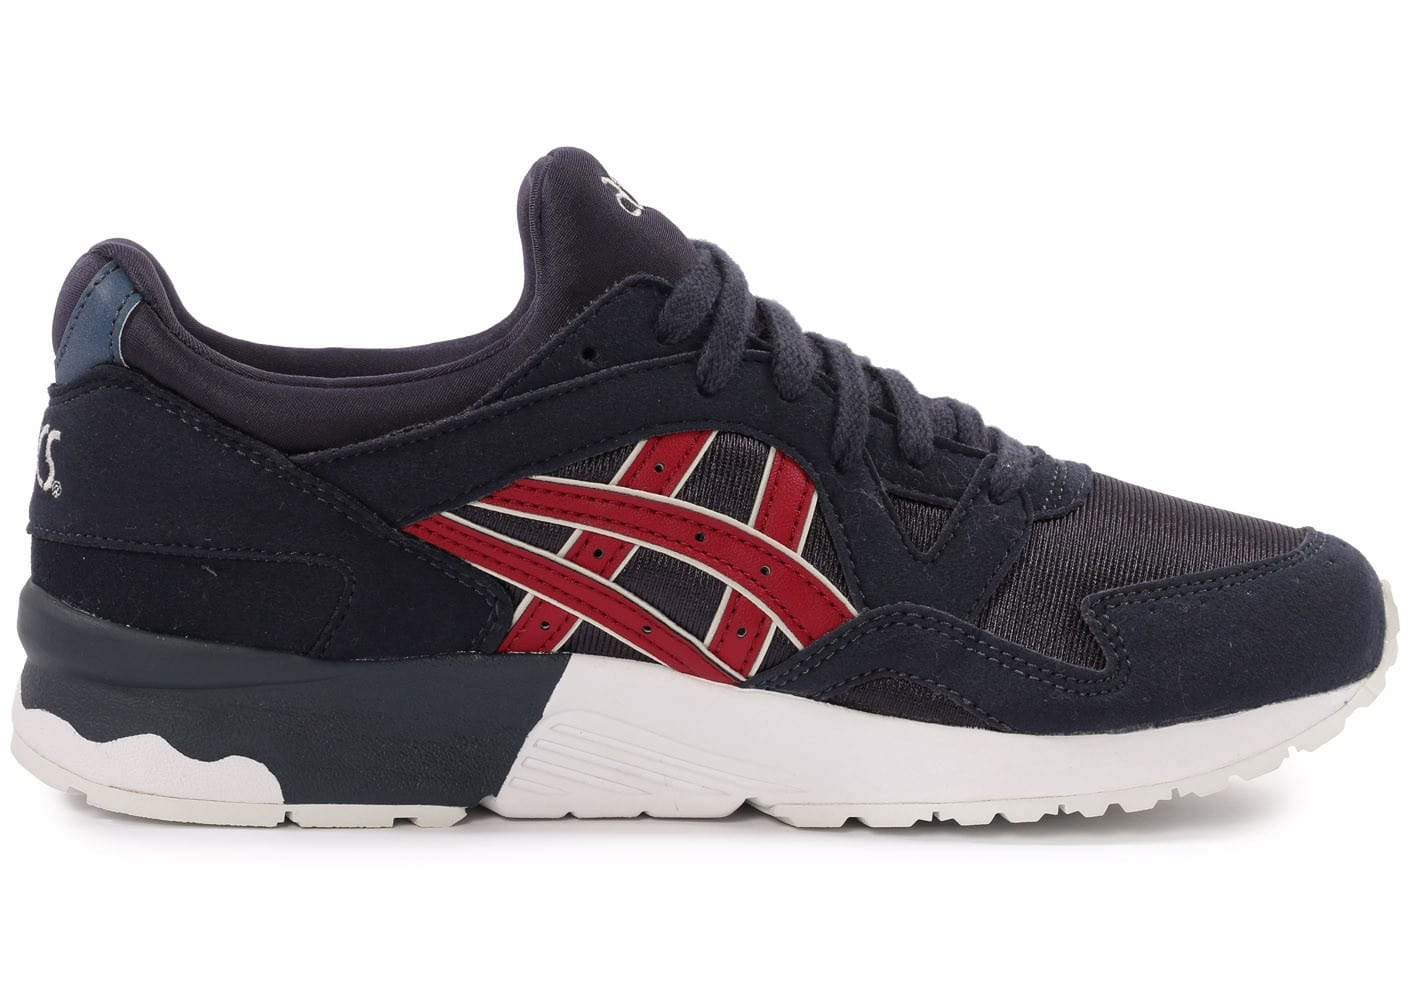 asics gel lyte v junior bleu marine et rouge chaussures toutes les baskets sold es chausport. Black Bedroom Furniture Sets. Home Design Ideas